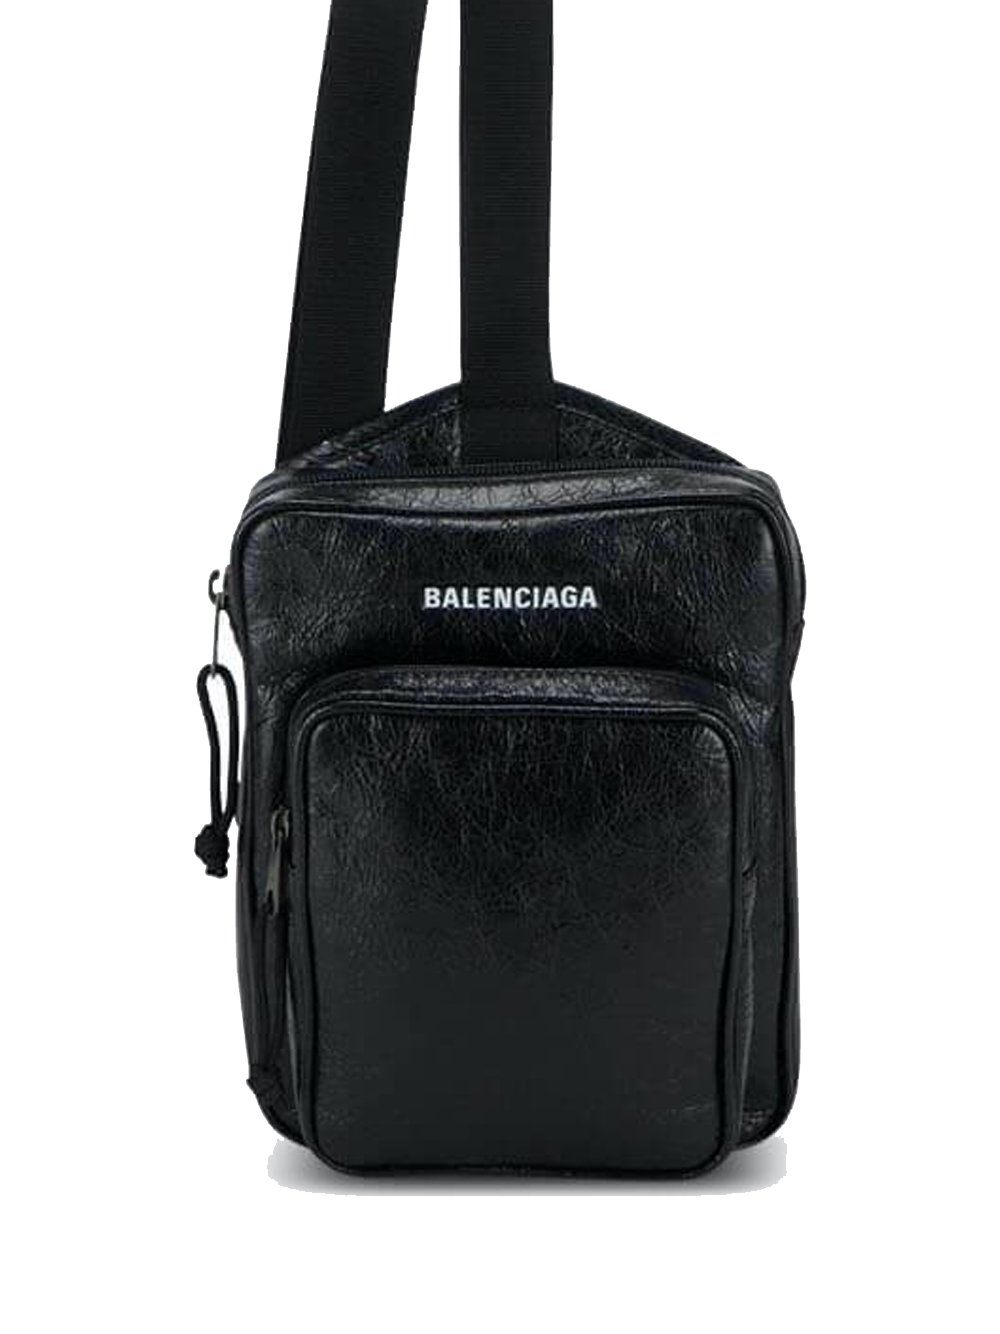 BALENCIAGA logo crossbody bag black